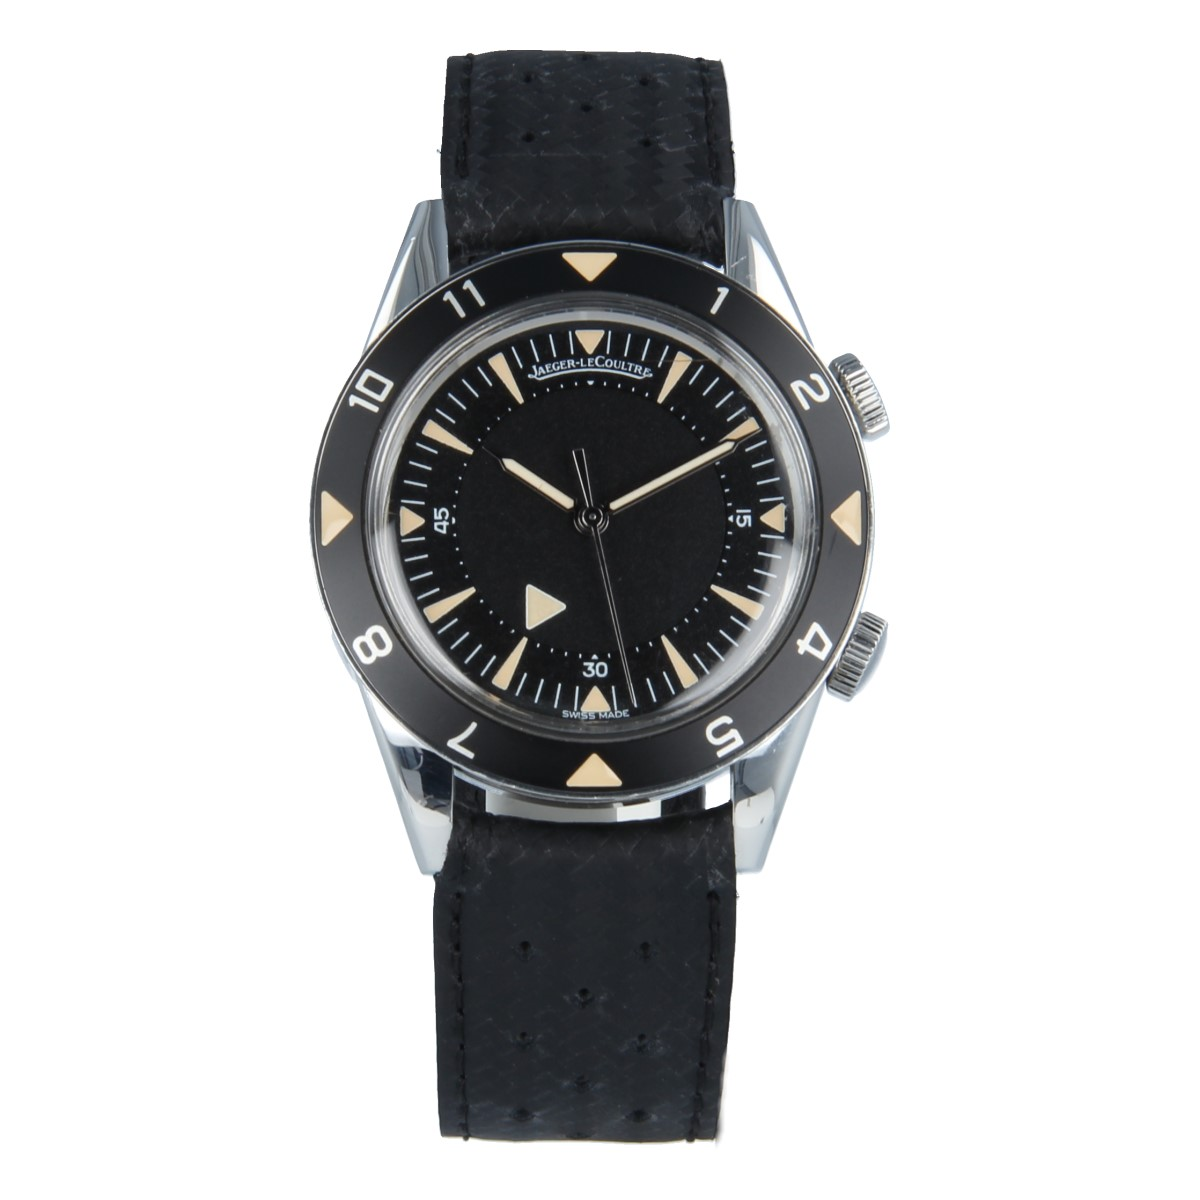 Jaeger-LeCoultre Memovox Tribute to Deep Sea | Buy pre-owned Jaeger-LeCoultre watch